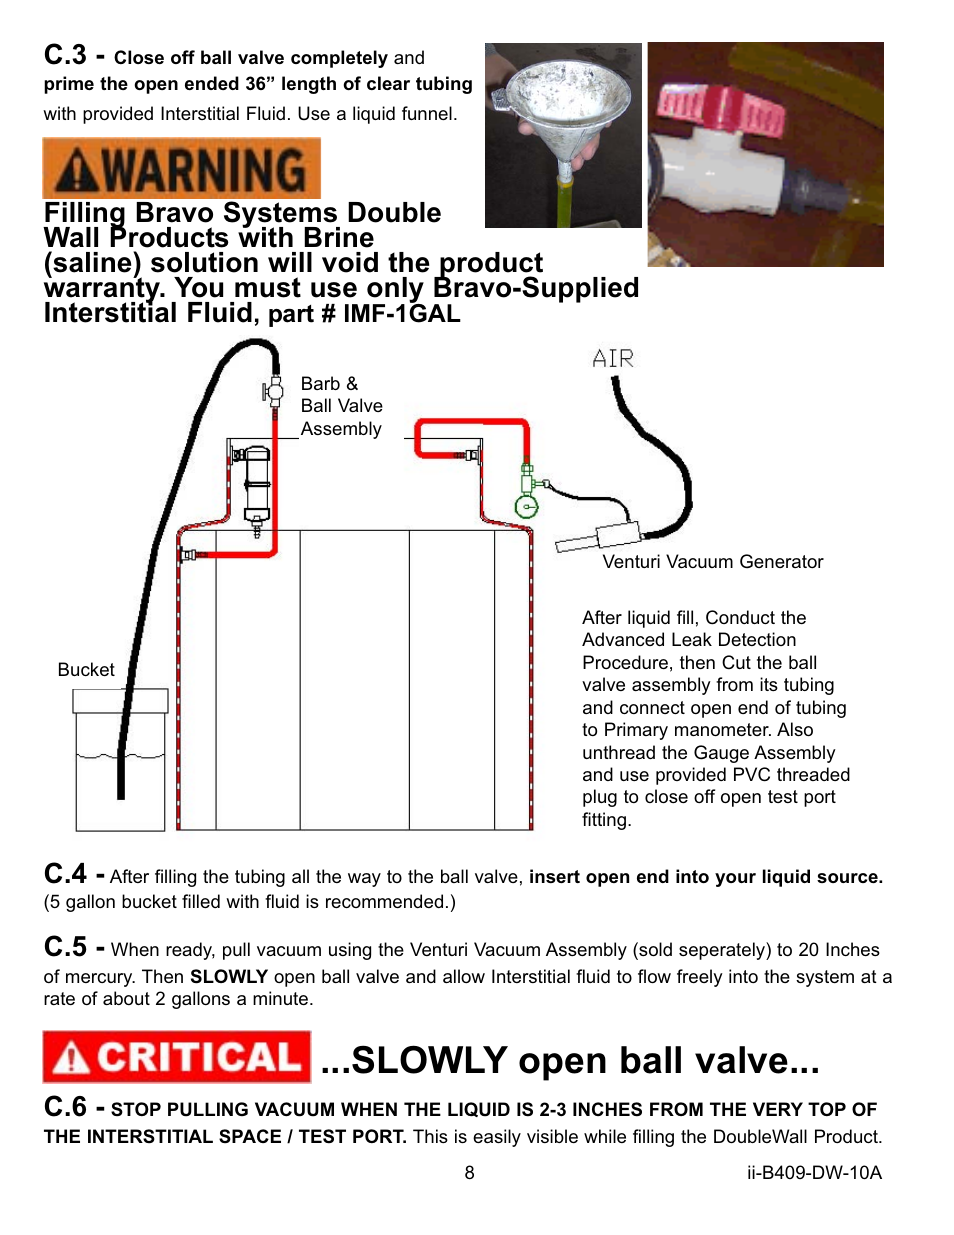 Slowly open ball valve | Bravo View B409 User Manual | Page 8 / 12